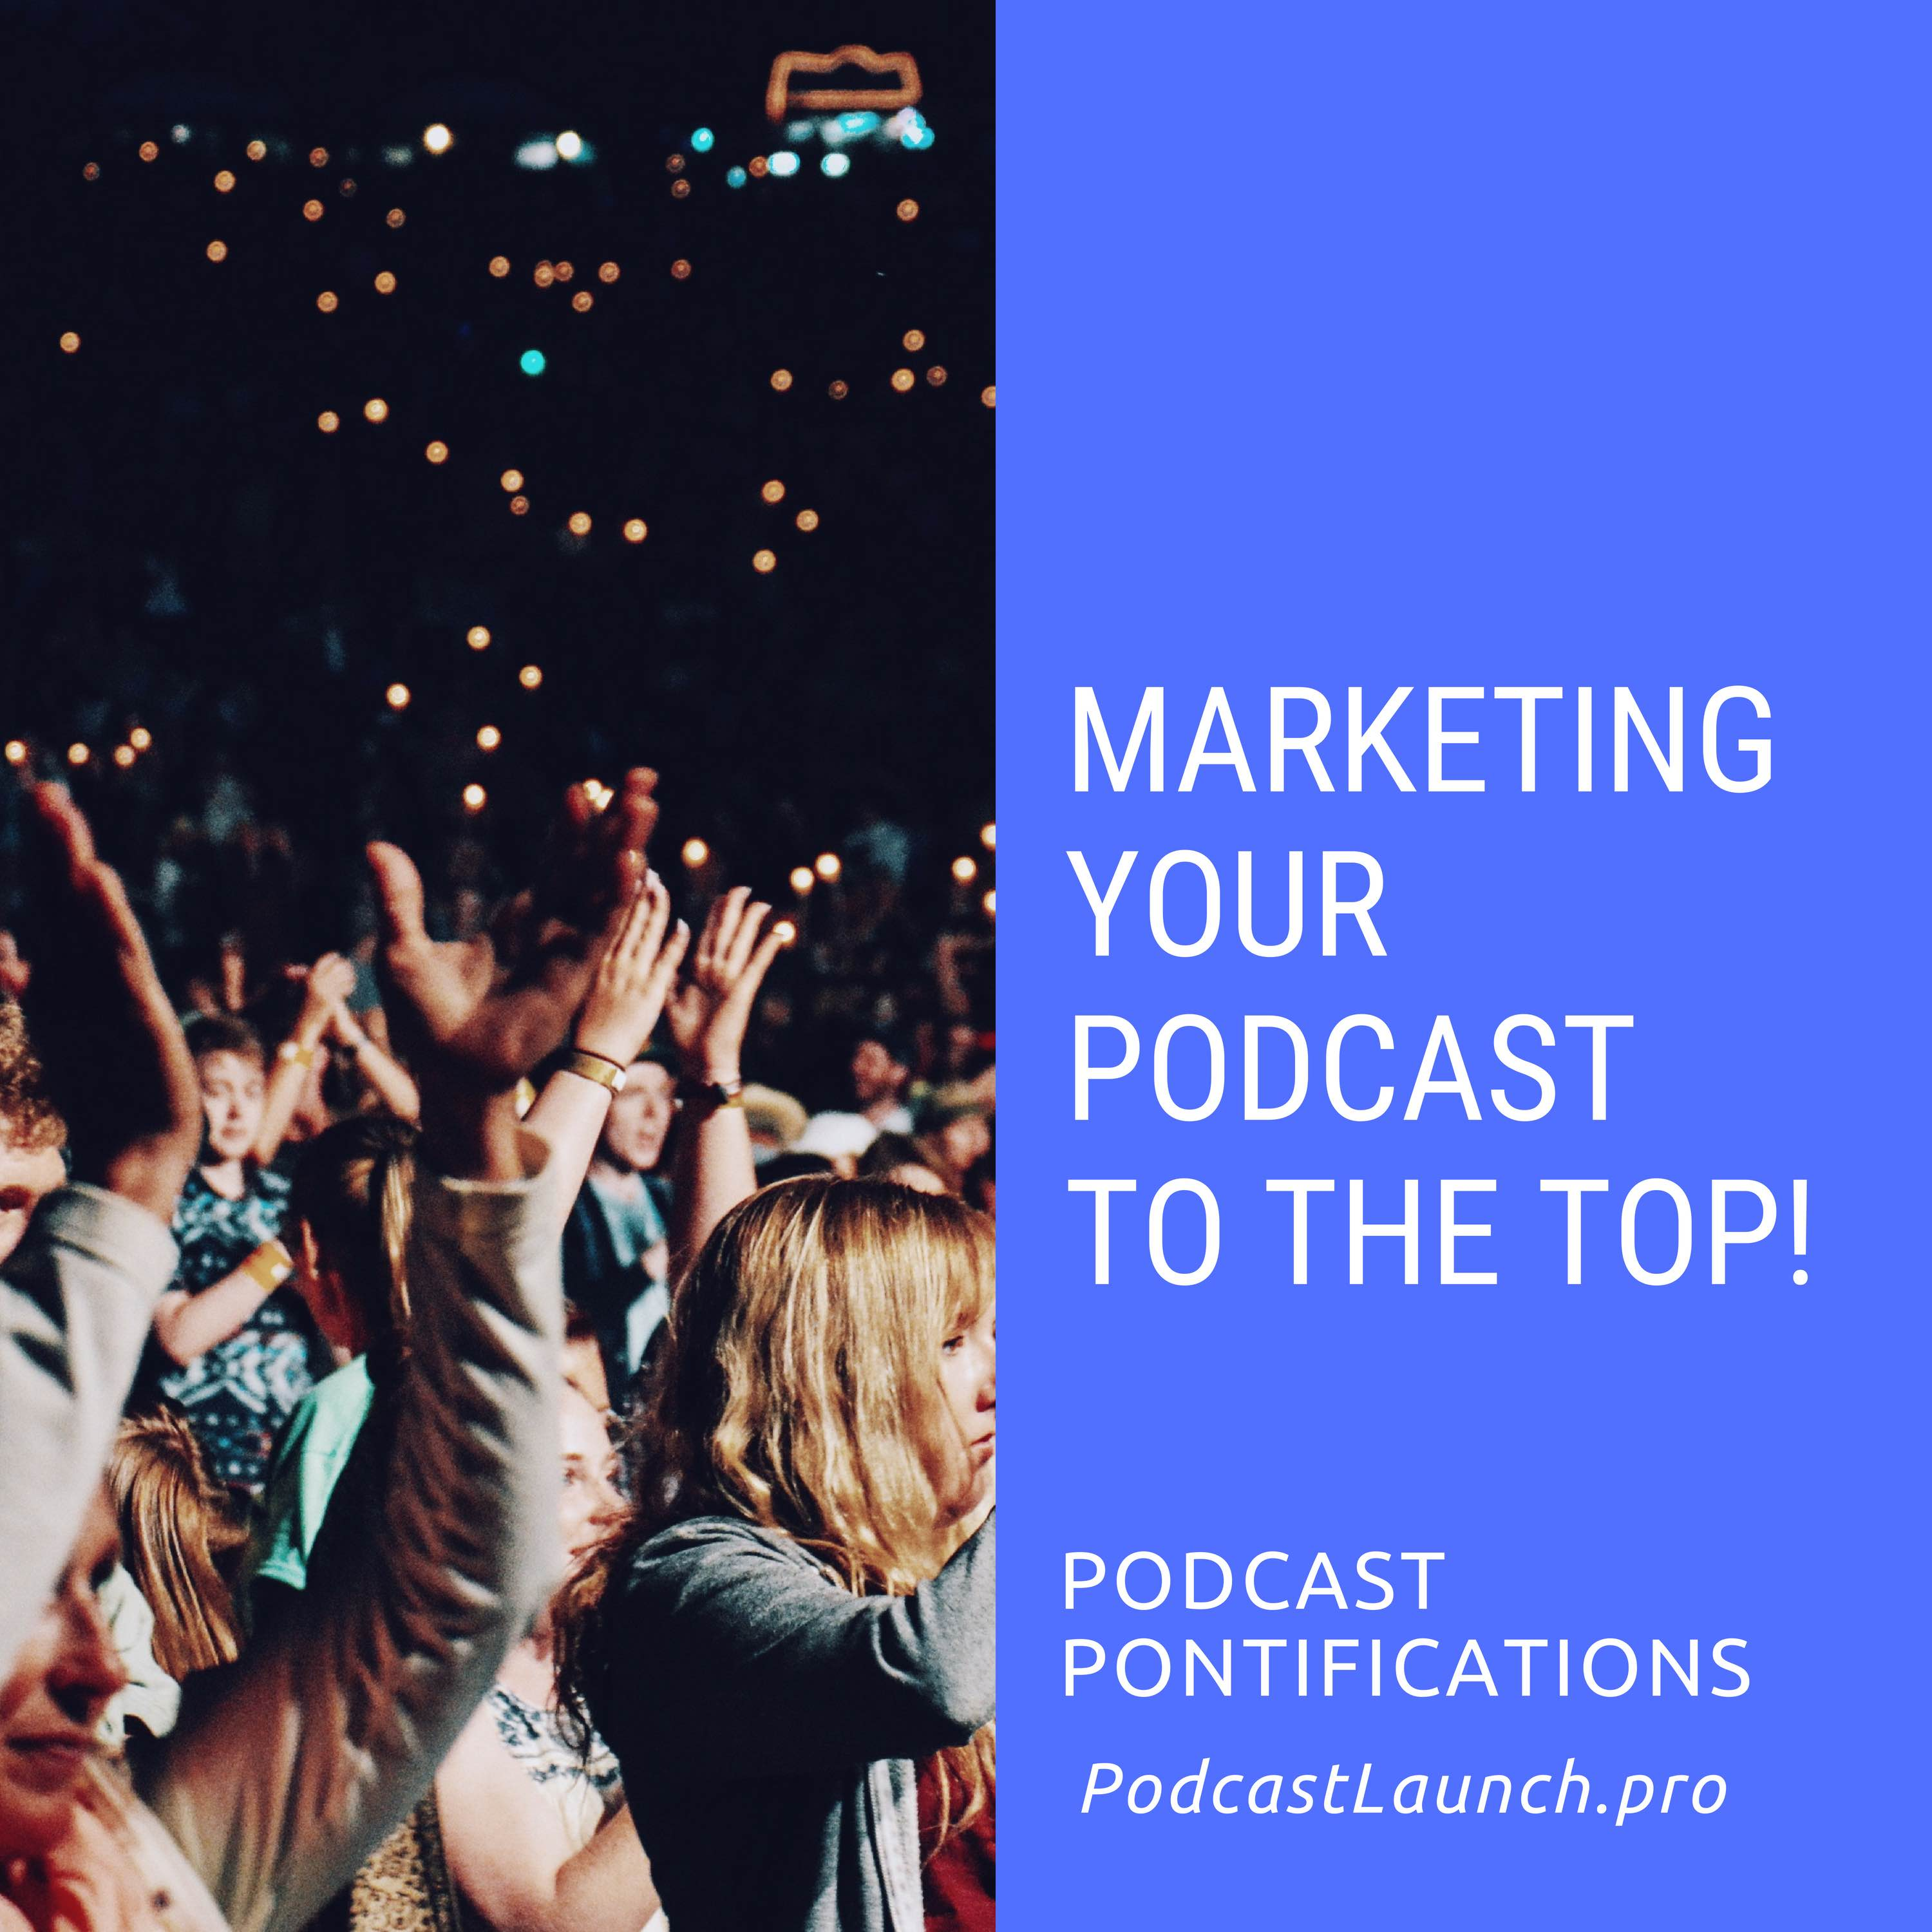 Marketing your podcast to the TOP!